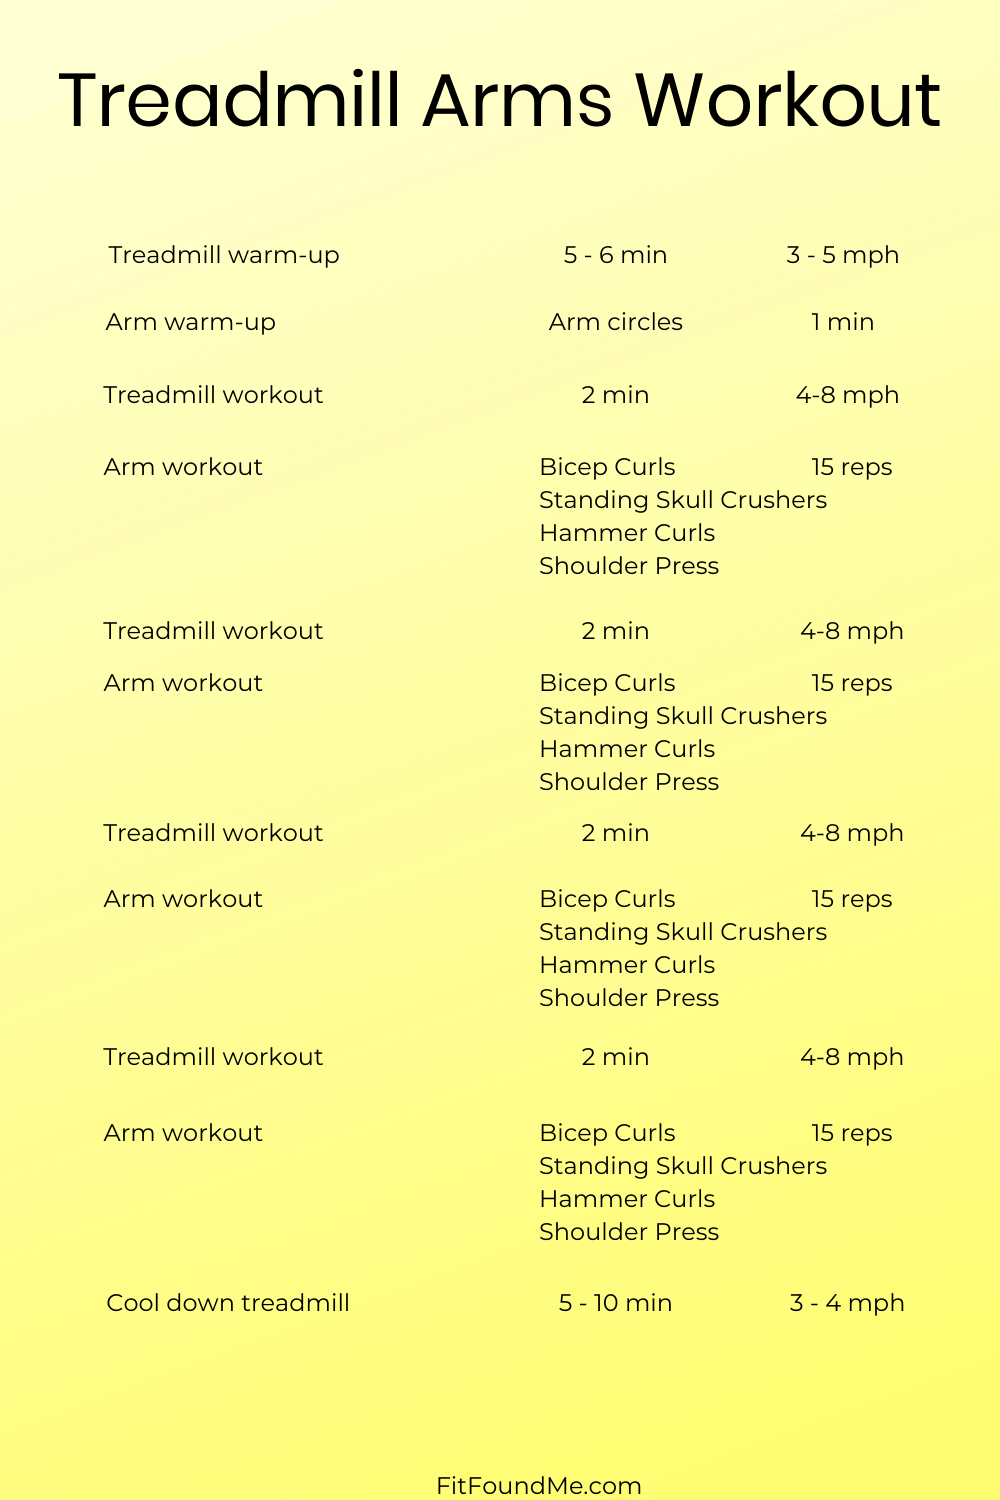 This treadmill dumbbell workout plan is great for a total body workout, burning more calories with the circuit or hiit interval workout and changes a boring treadmill workout to a fast moving, fun workout session. This workout plan is easy to adjust to your personal fitness to create a great fat burning exercise! #treadmillworkout #treadmillarmworkout #treadmill #armworkout #armsworkout #workoutsforwomen #workouts #hiitworkout #circuittraining #intervalworkout #strengthtraining  via @fitfoundme